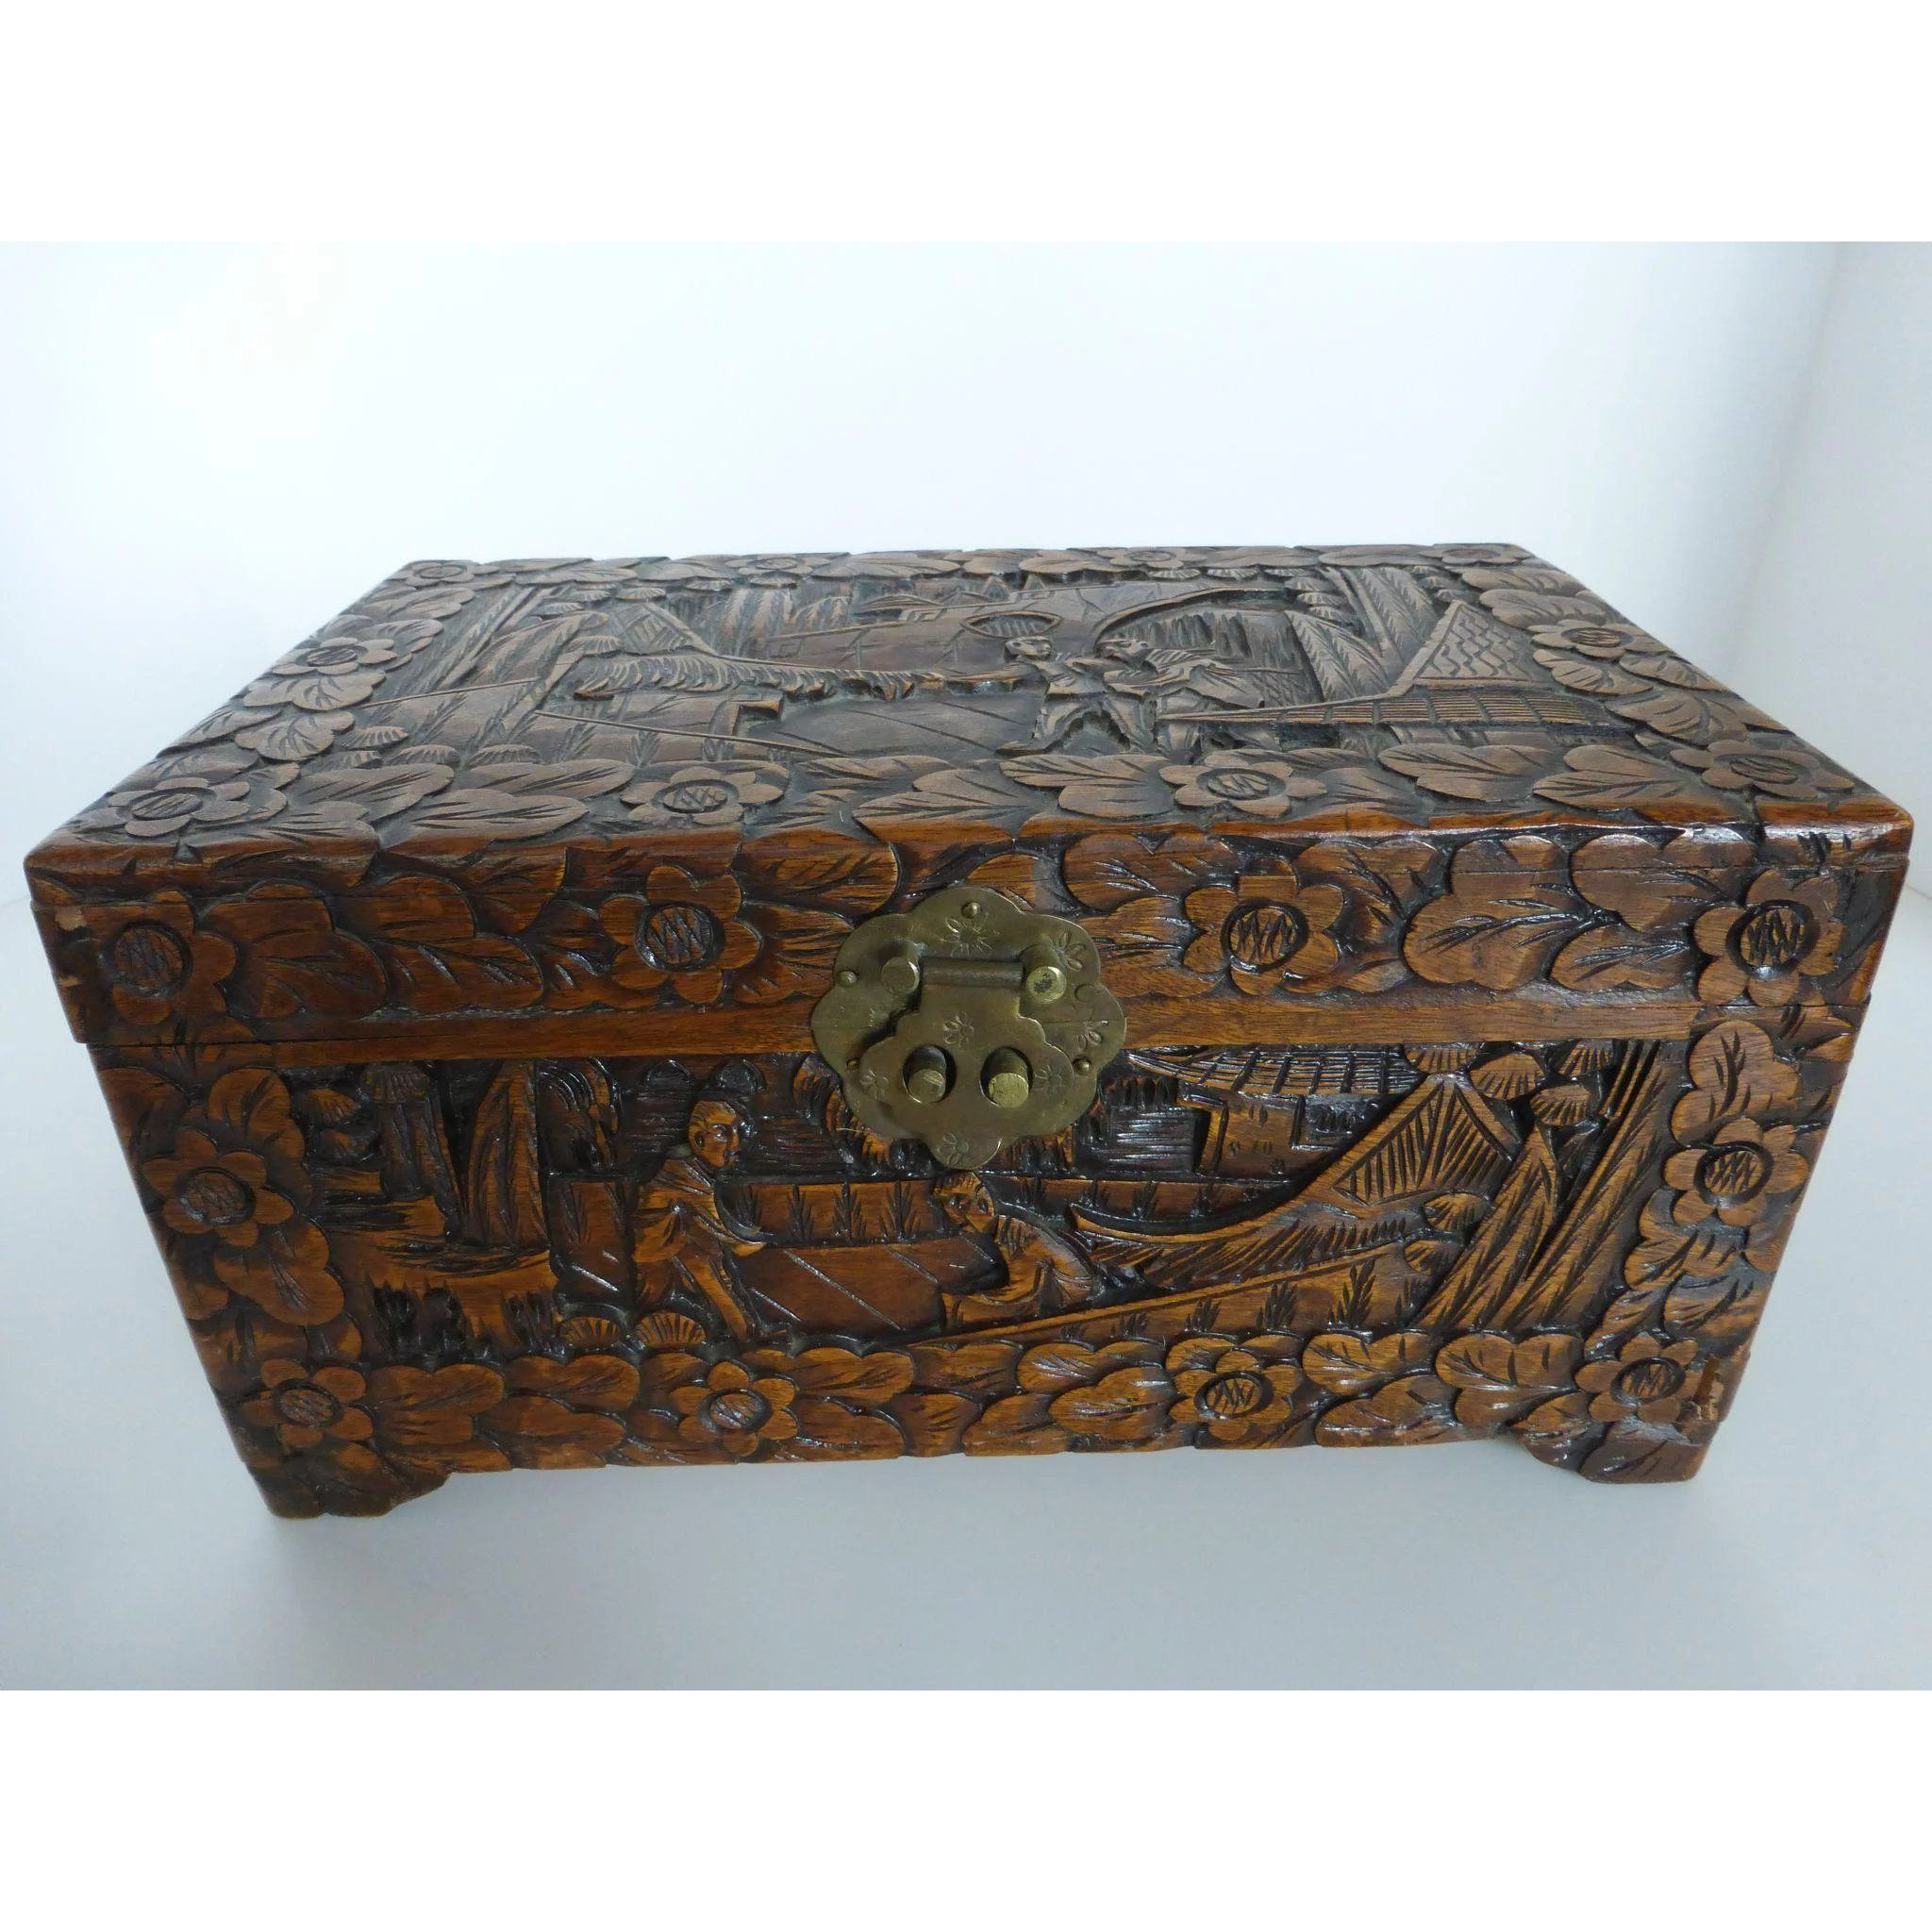 Vintage Chinese Carved Camphor Wood Jewelry Document Box Or Chest 12 Inch Wood Jewellery Antique Trunk Carving